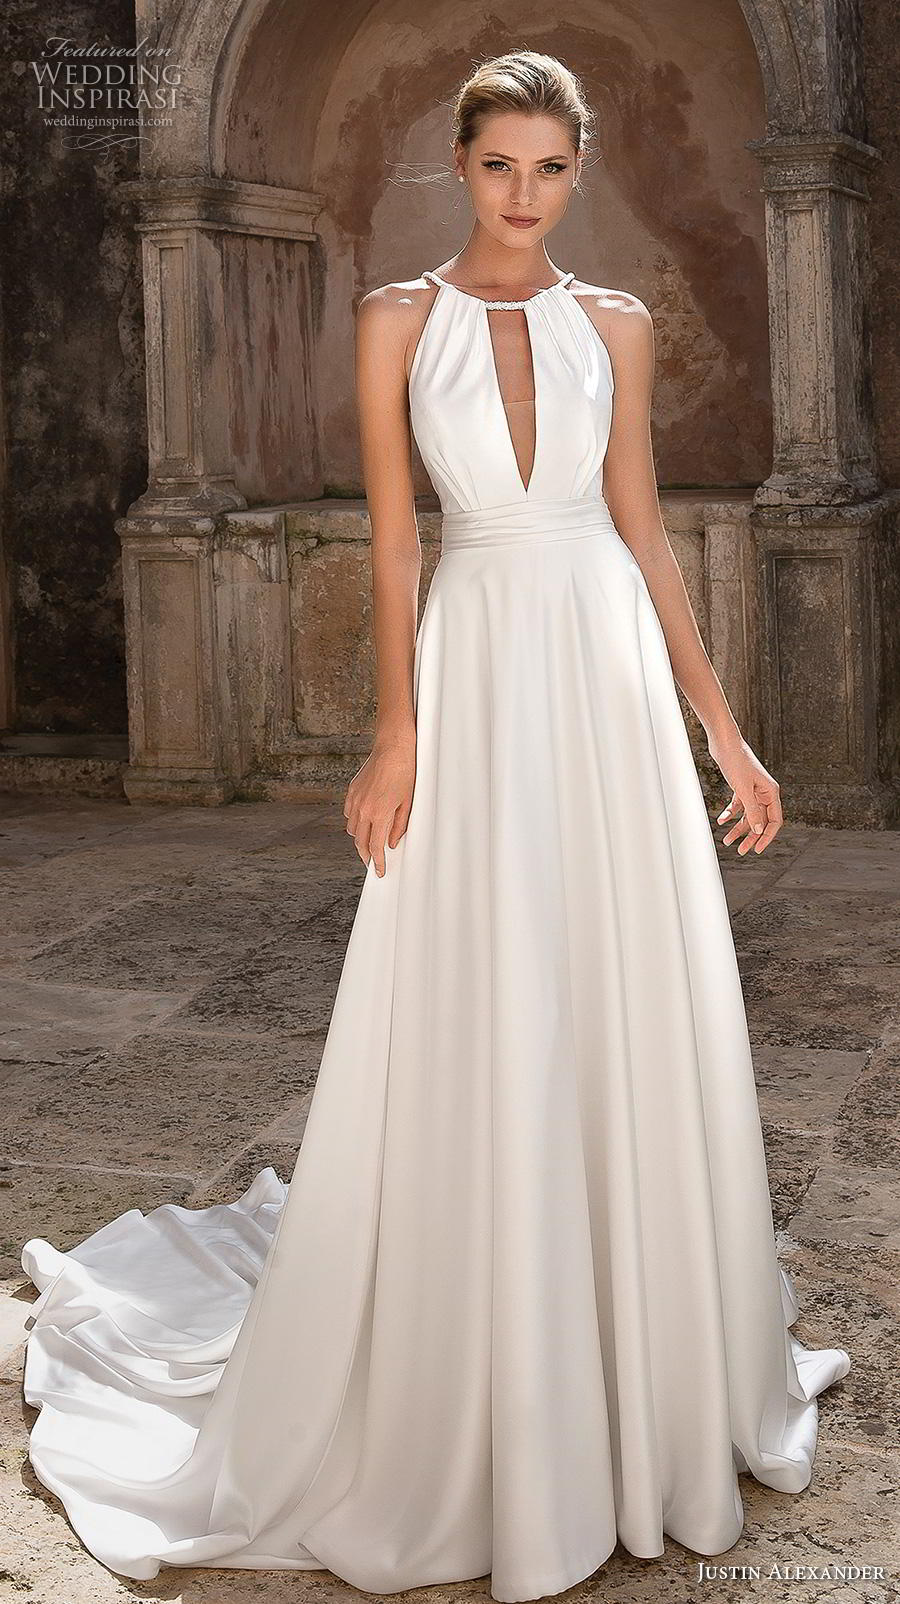 justin alexander spring 2019 bridal halter neck keyhole neckline simple elegant grecian modified a line wedding dress keyhole back chapel train (15) mv